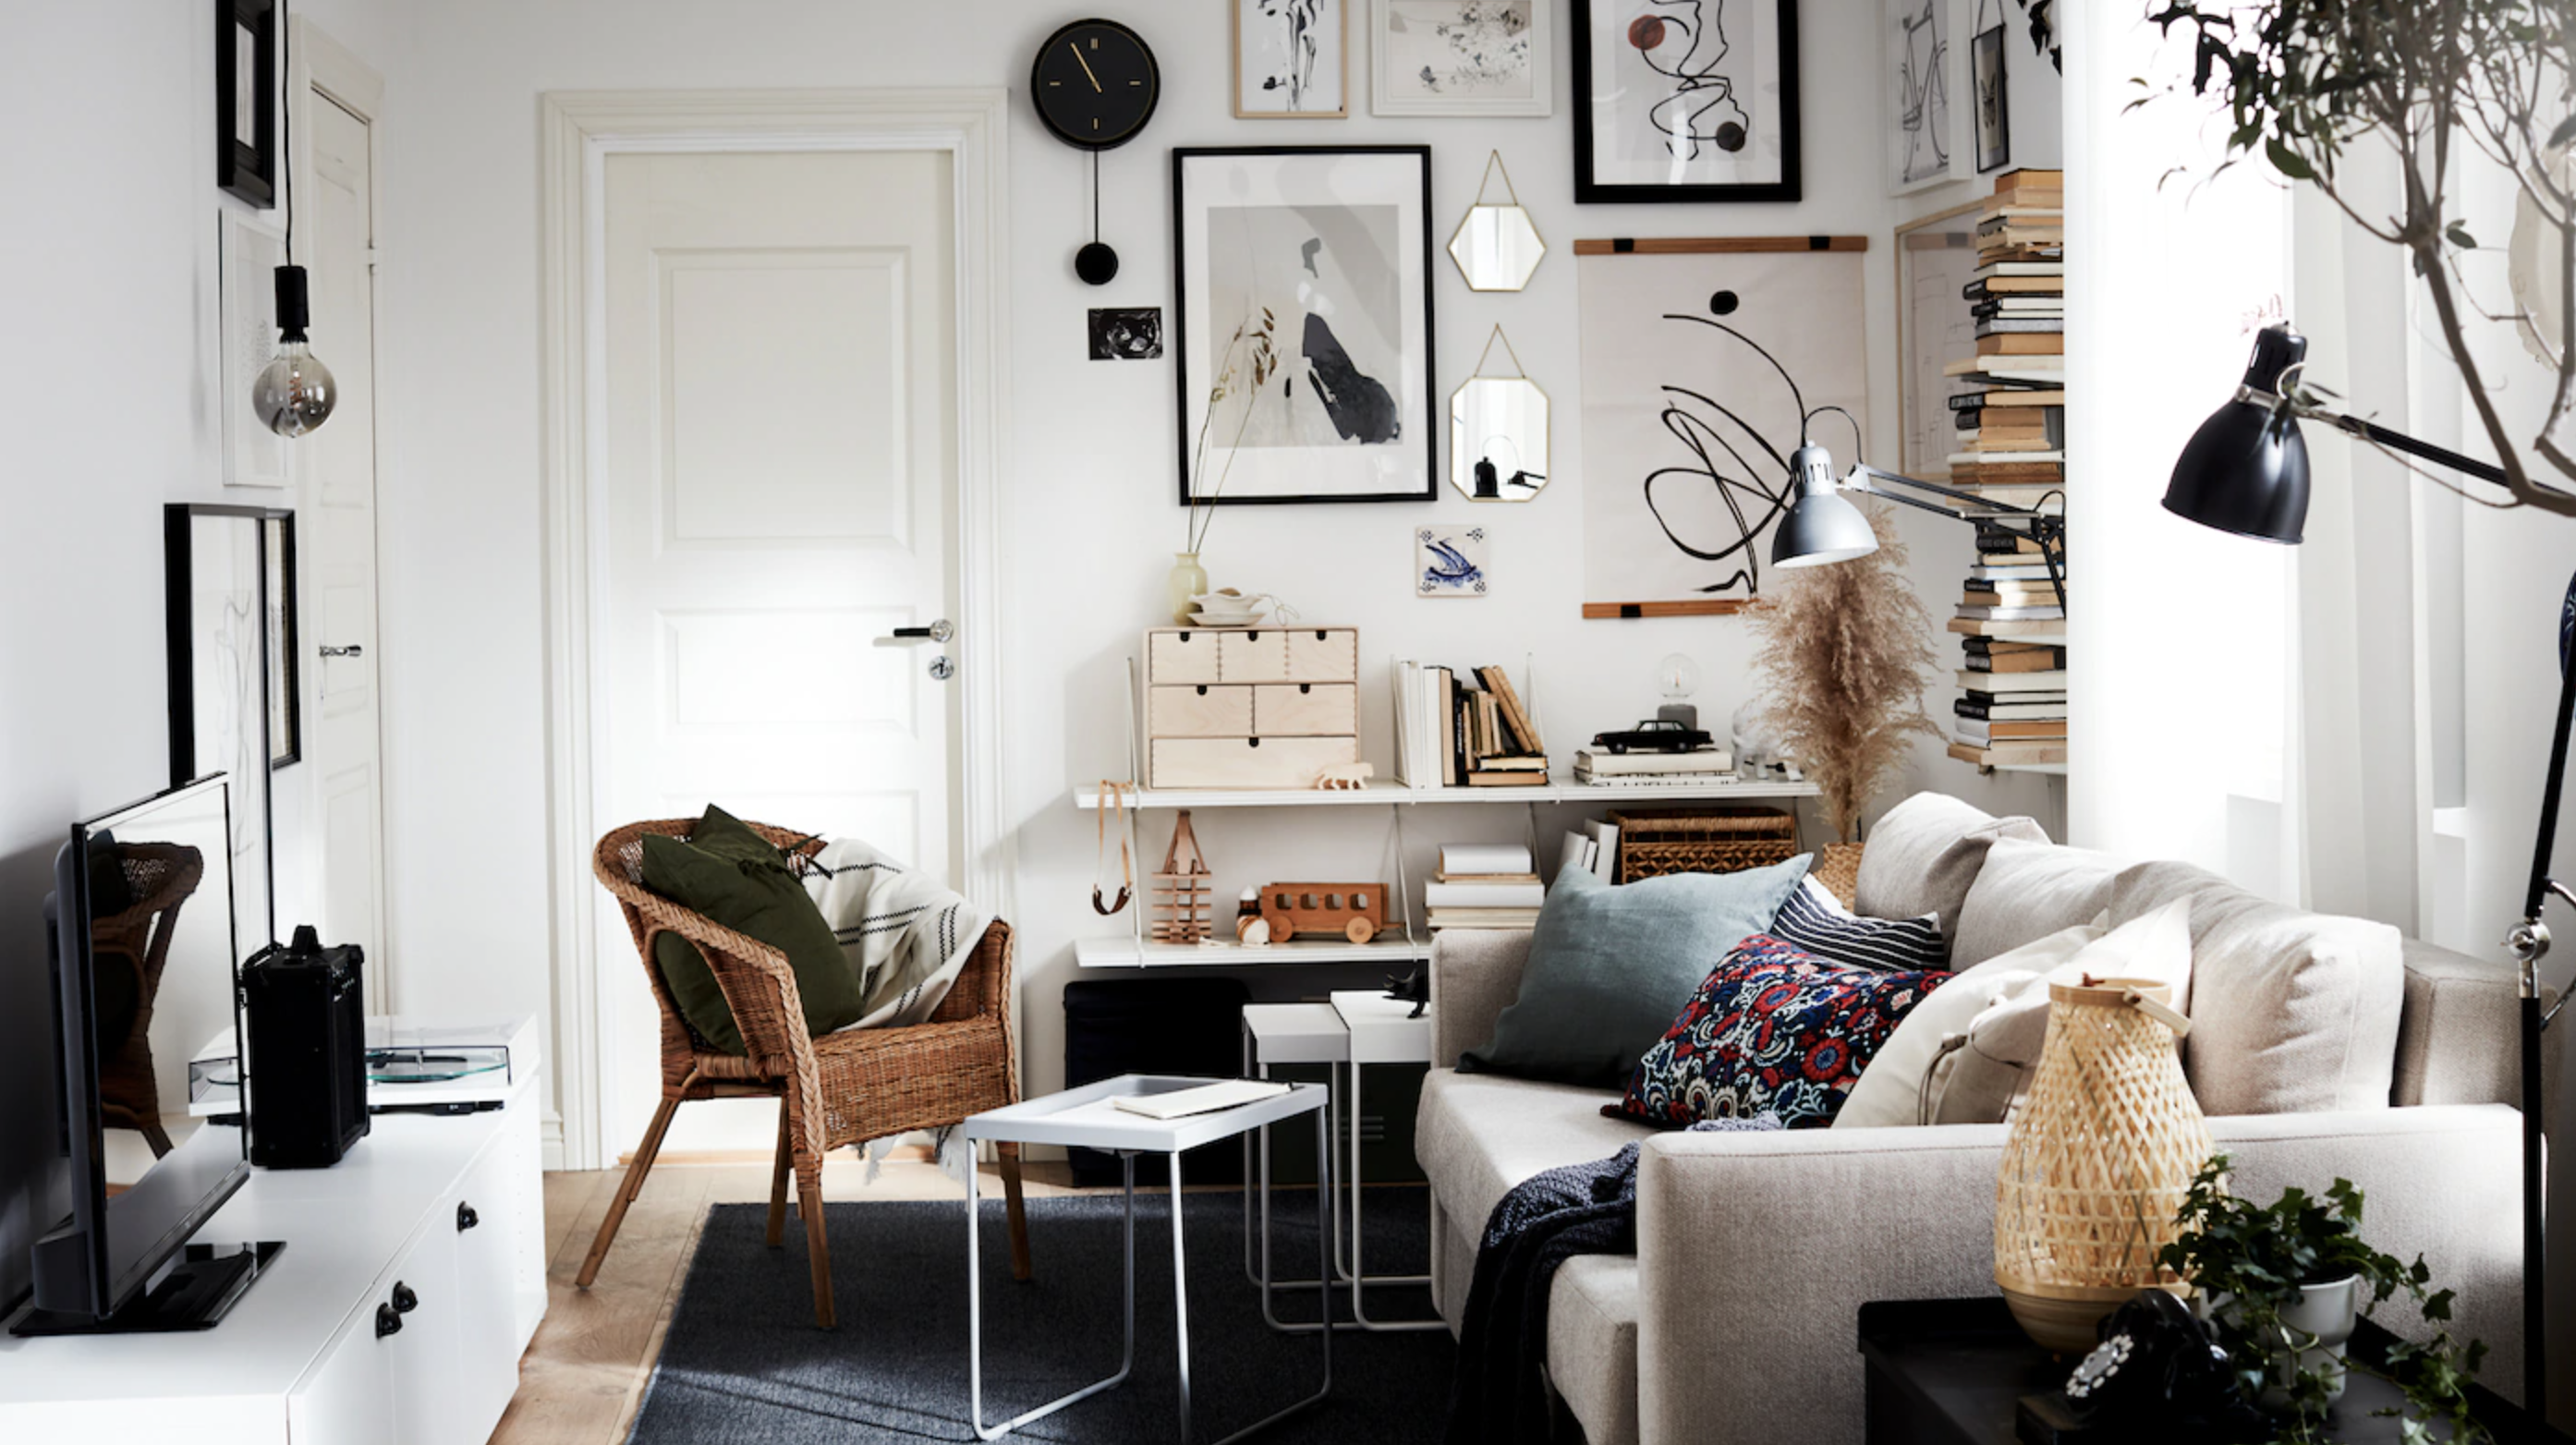 17 Small Living Room Ideas To Prove Small Can Still Be Stylish Real Homes